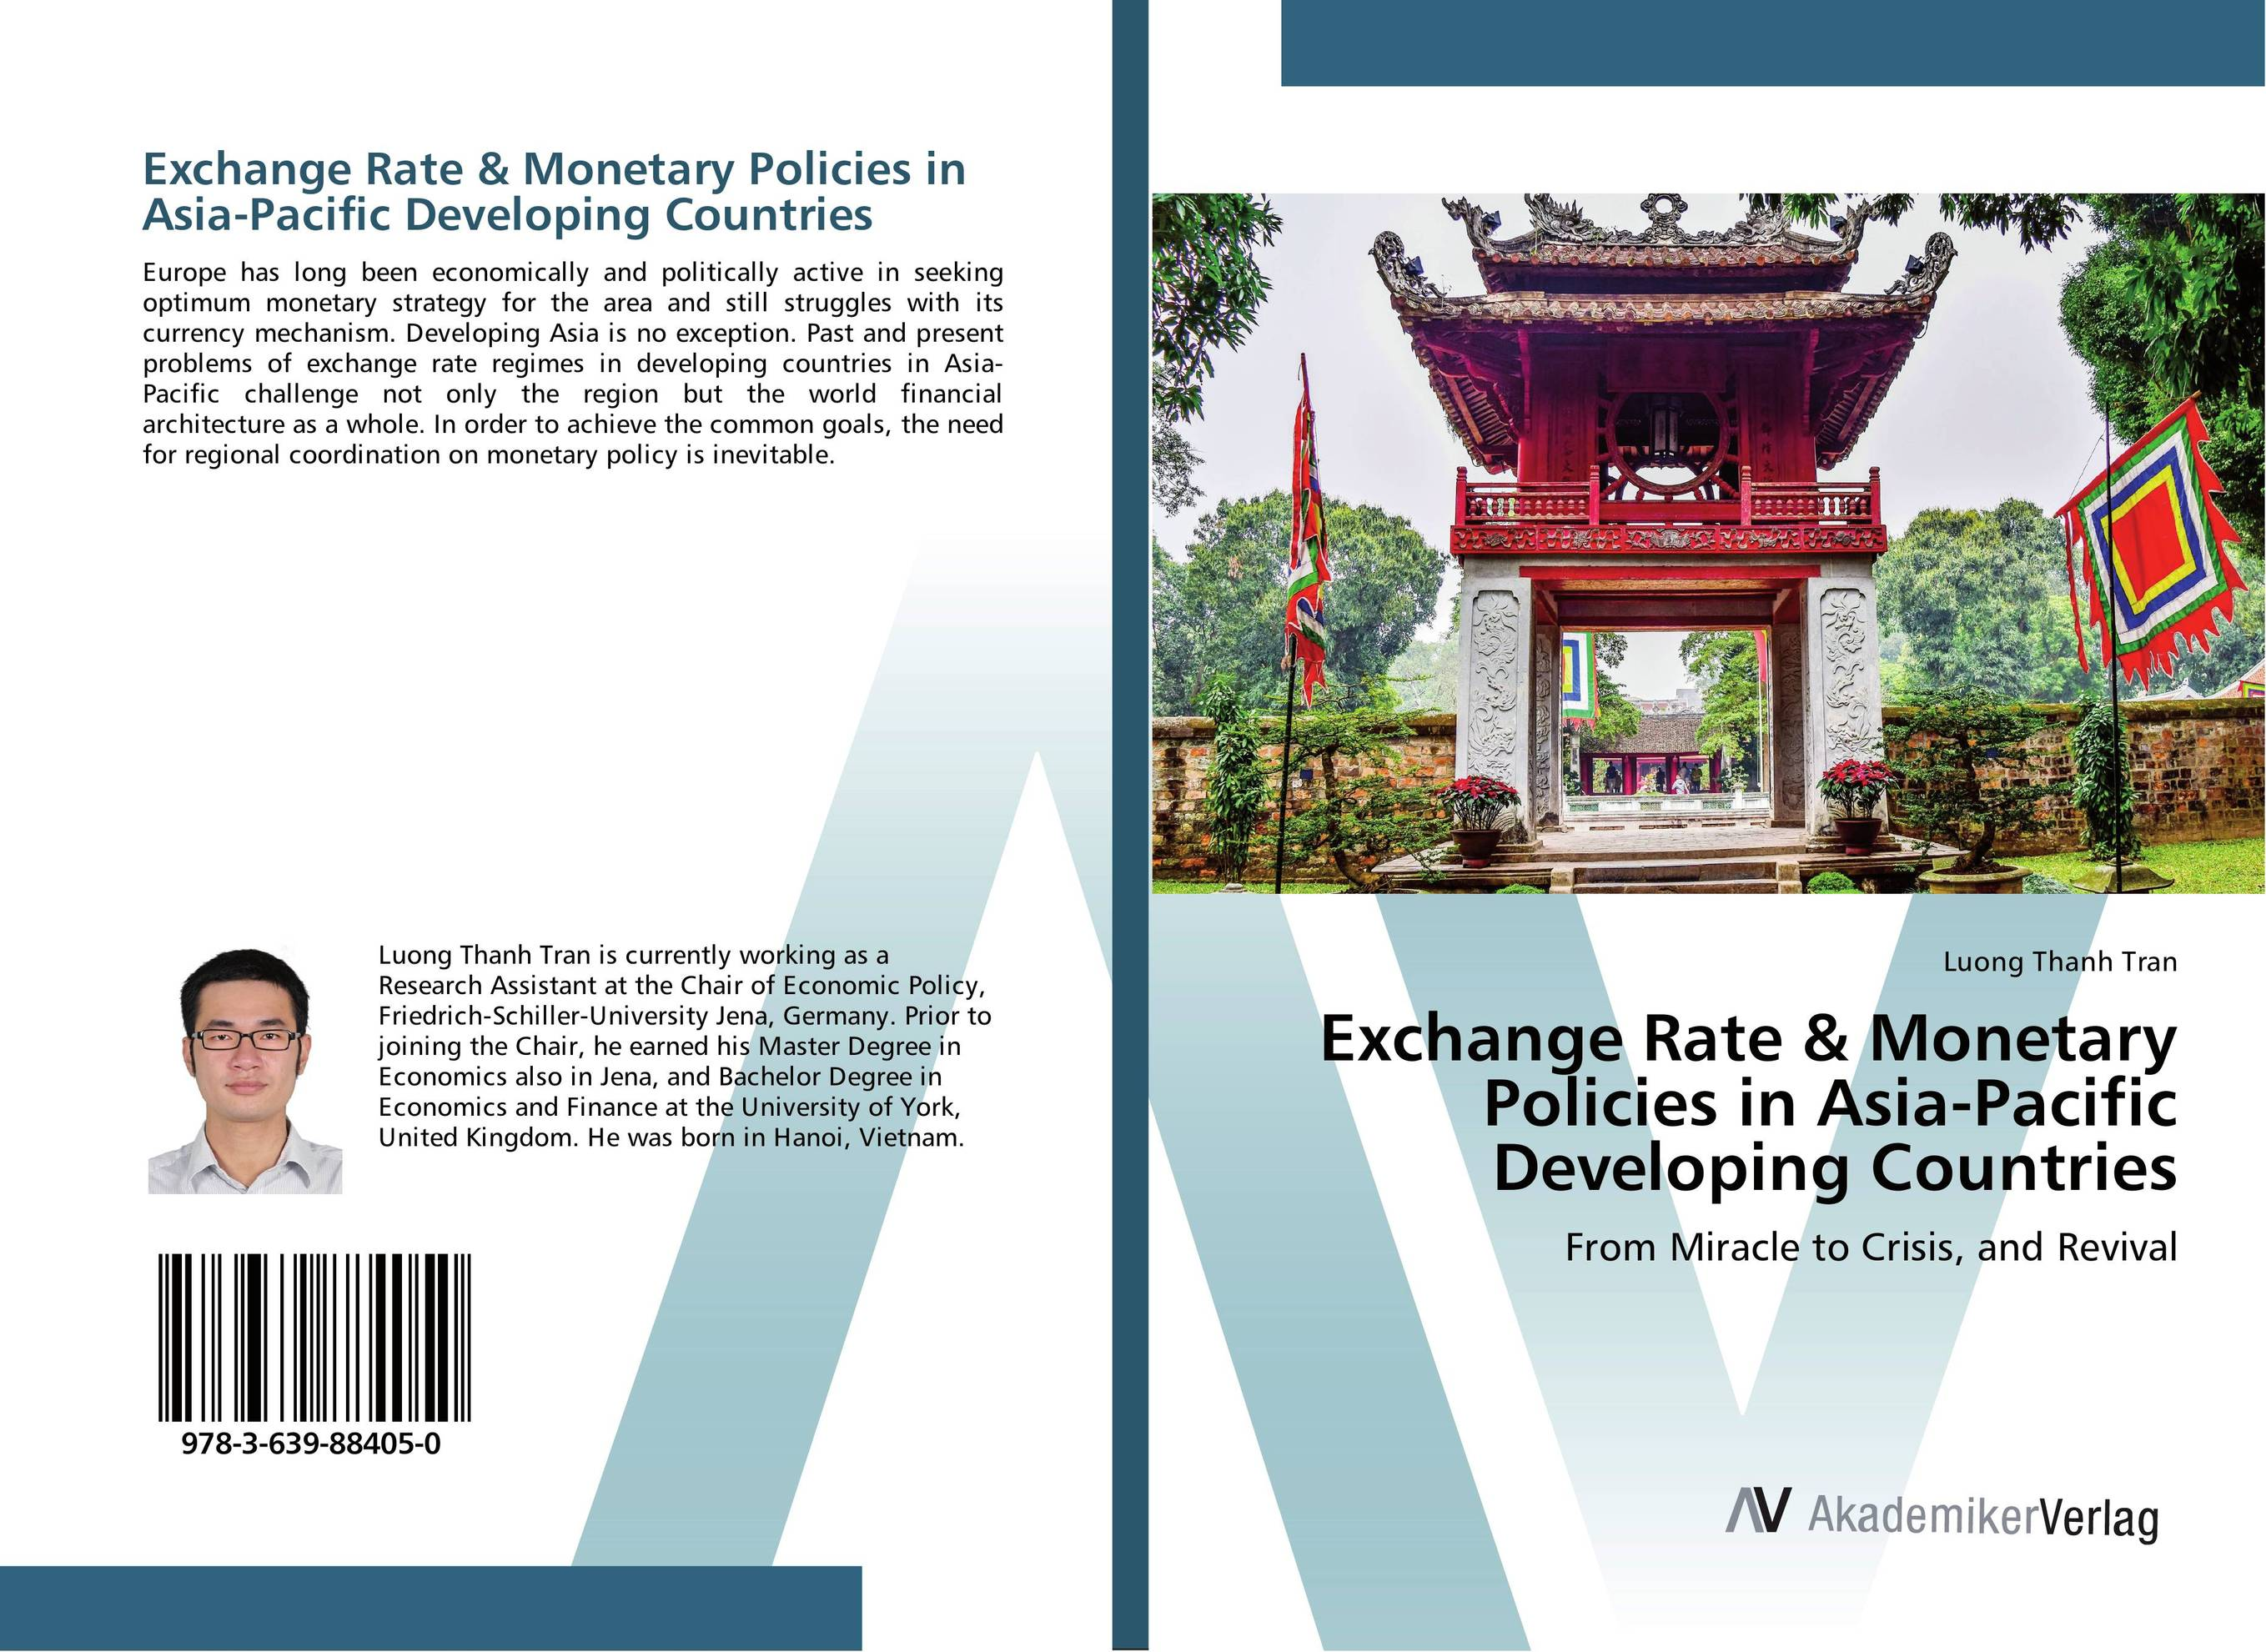 Exchange Rate & Monetary Policies in Asia-Pacific Developing Countries